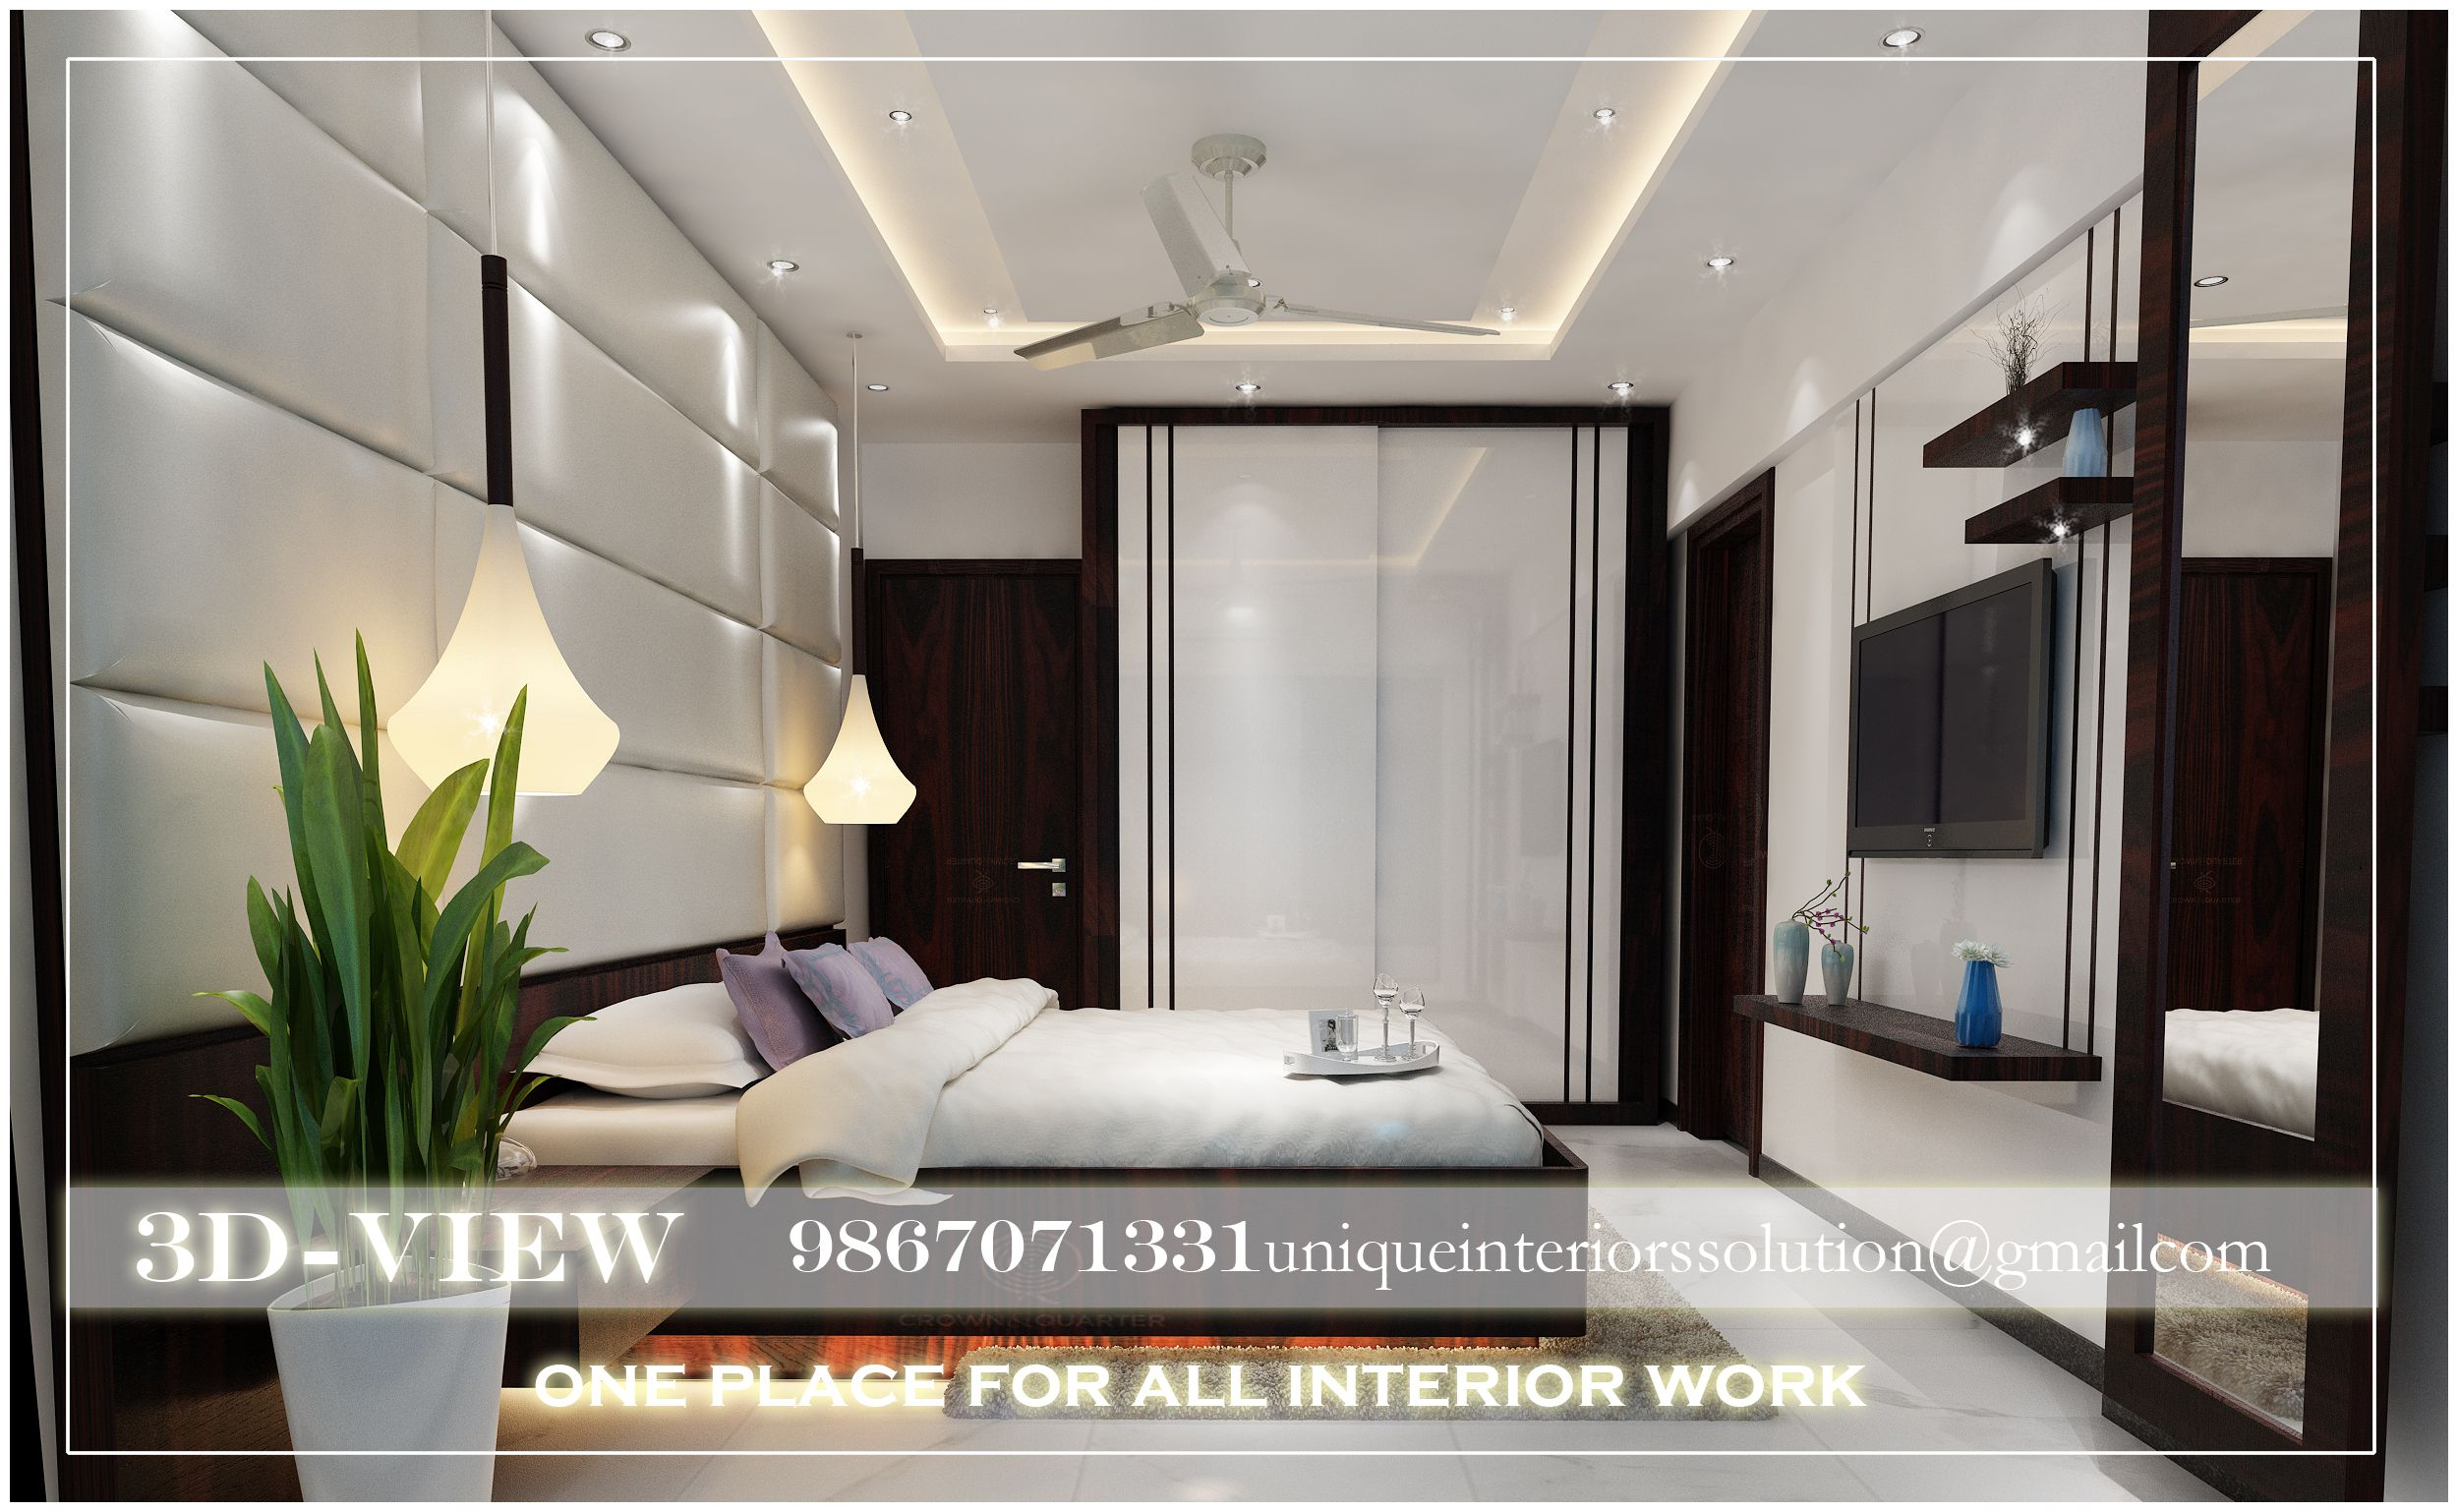 Top 10 Interior Designers In Mumbai If You Need The Best Green